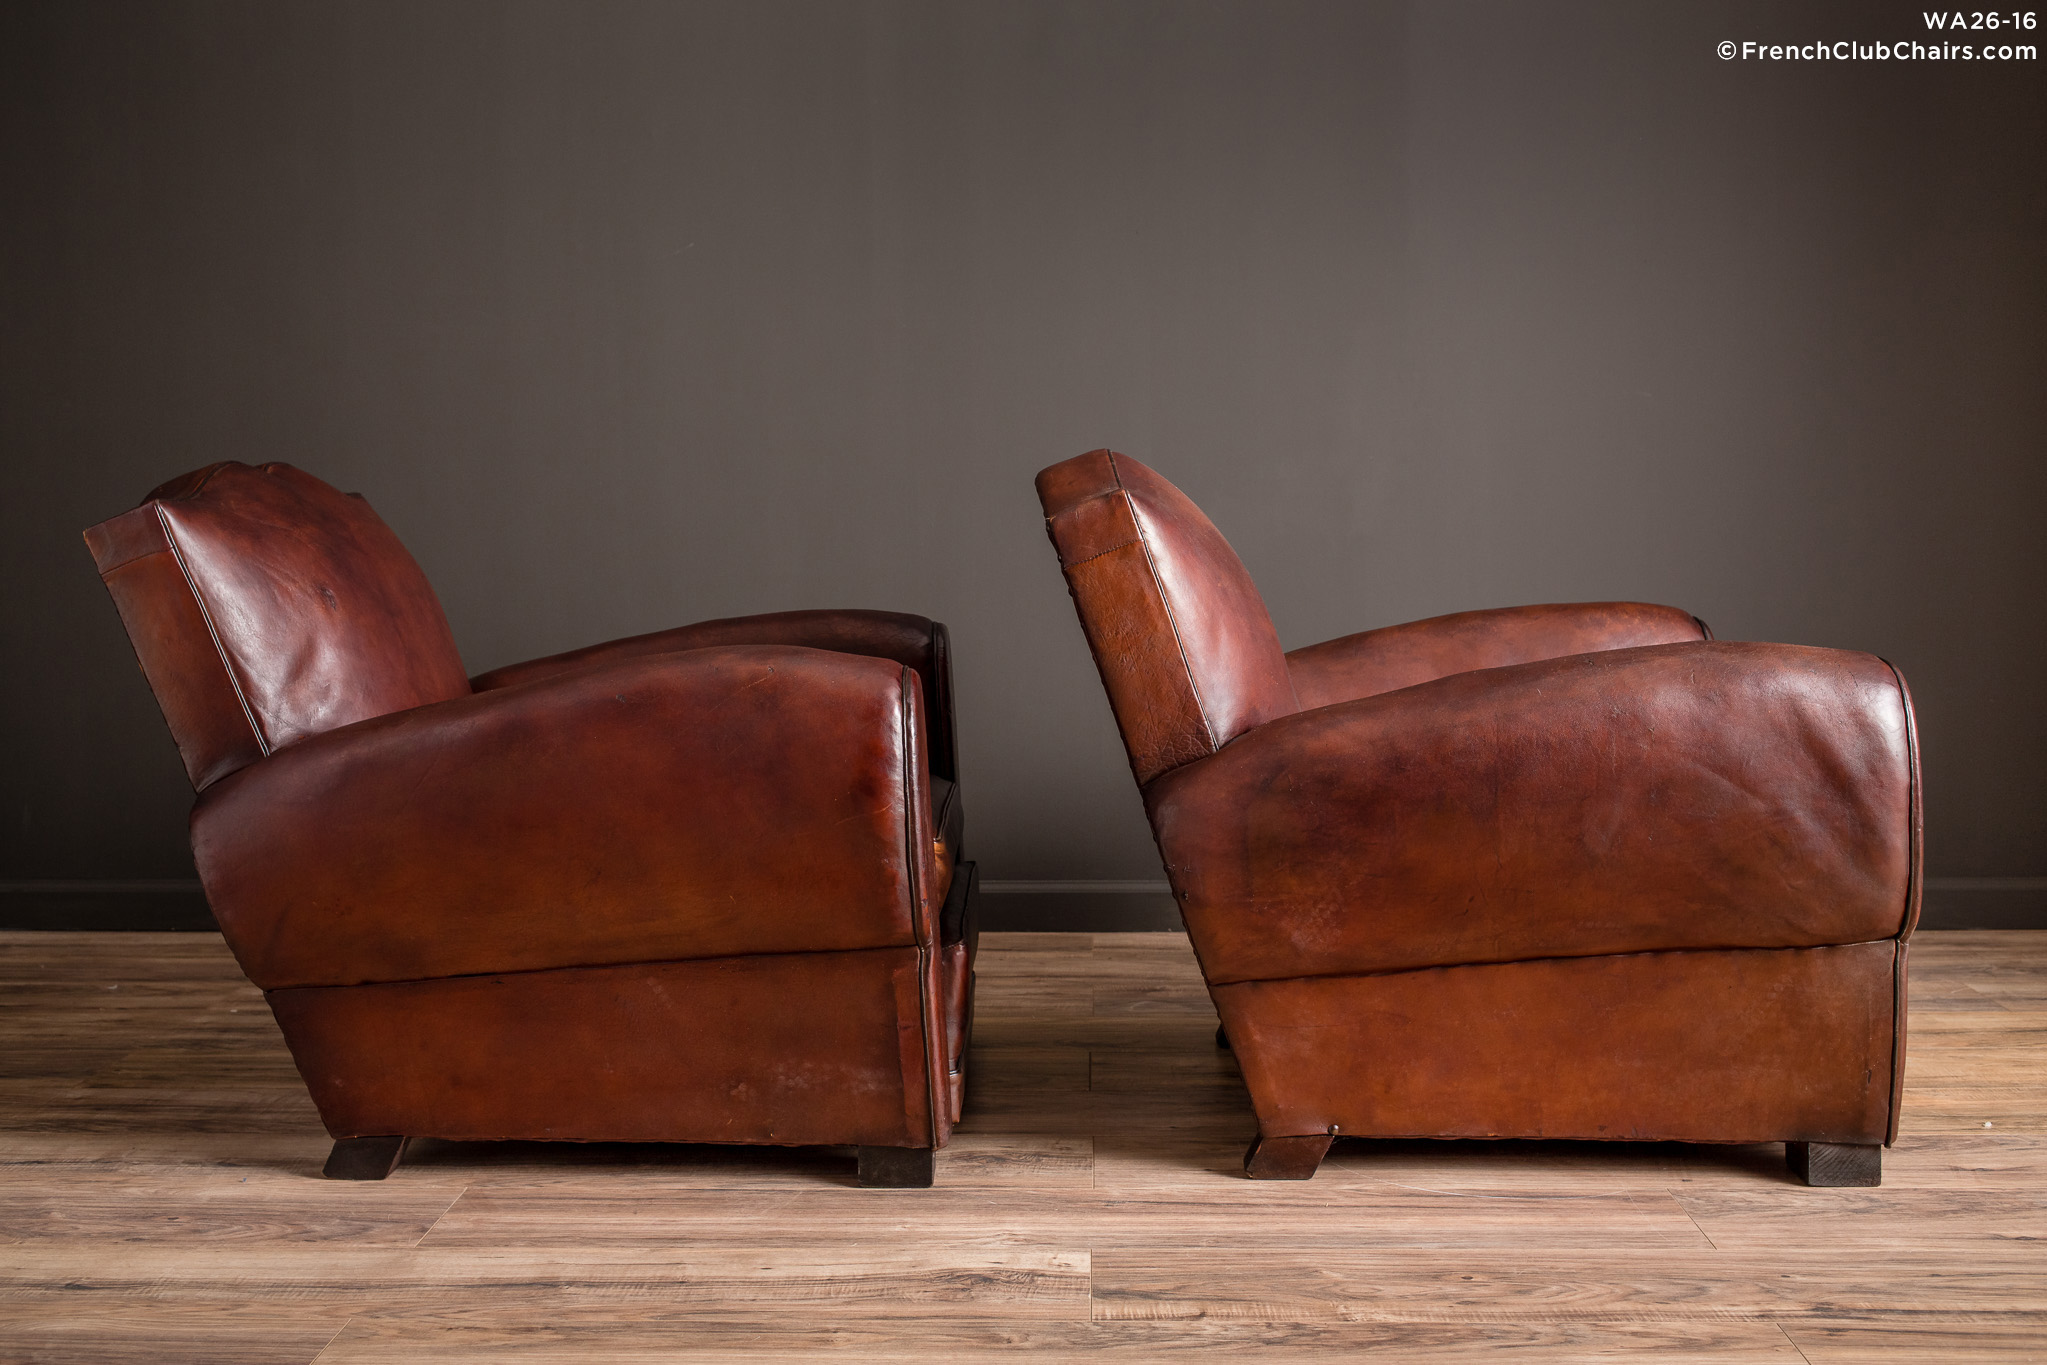 $9,750.00. Royan Mustache Pair Of Leather French Club Chairs | WA26 16